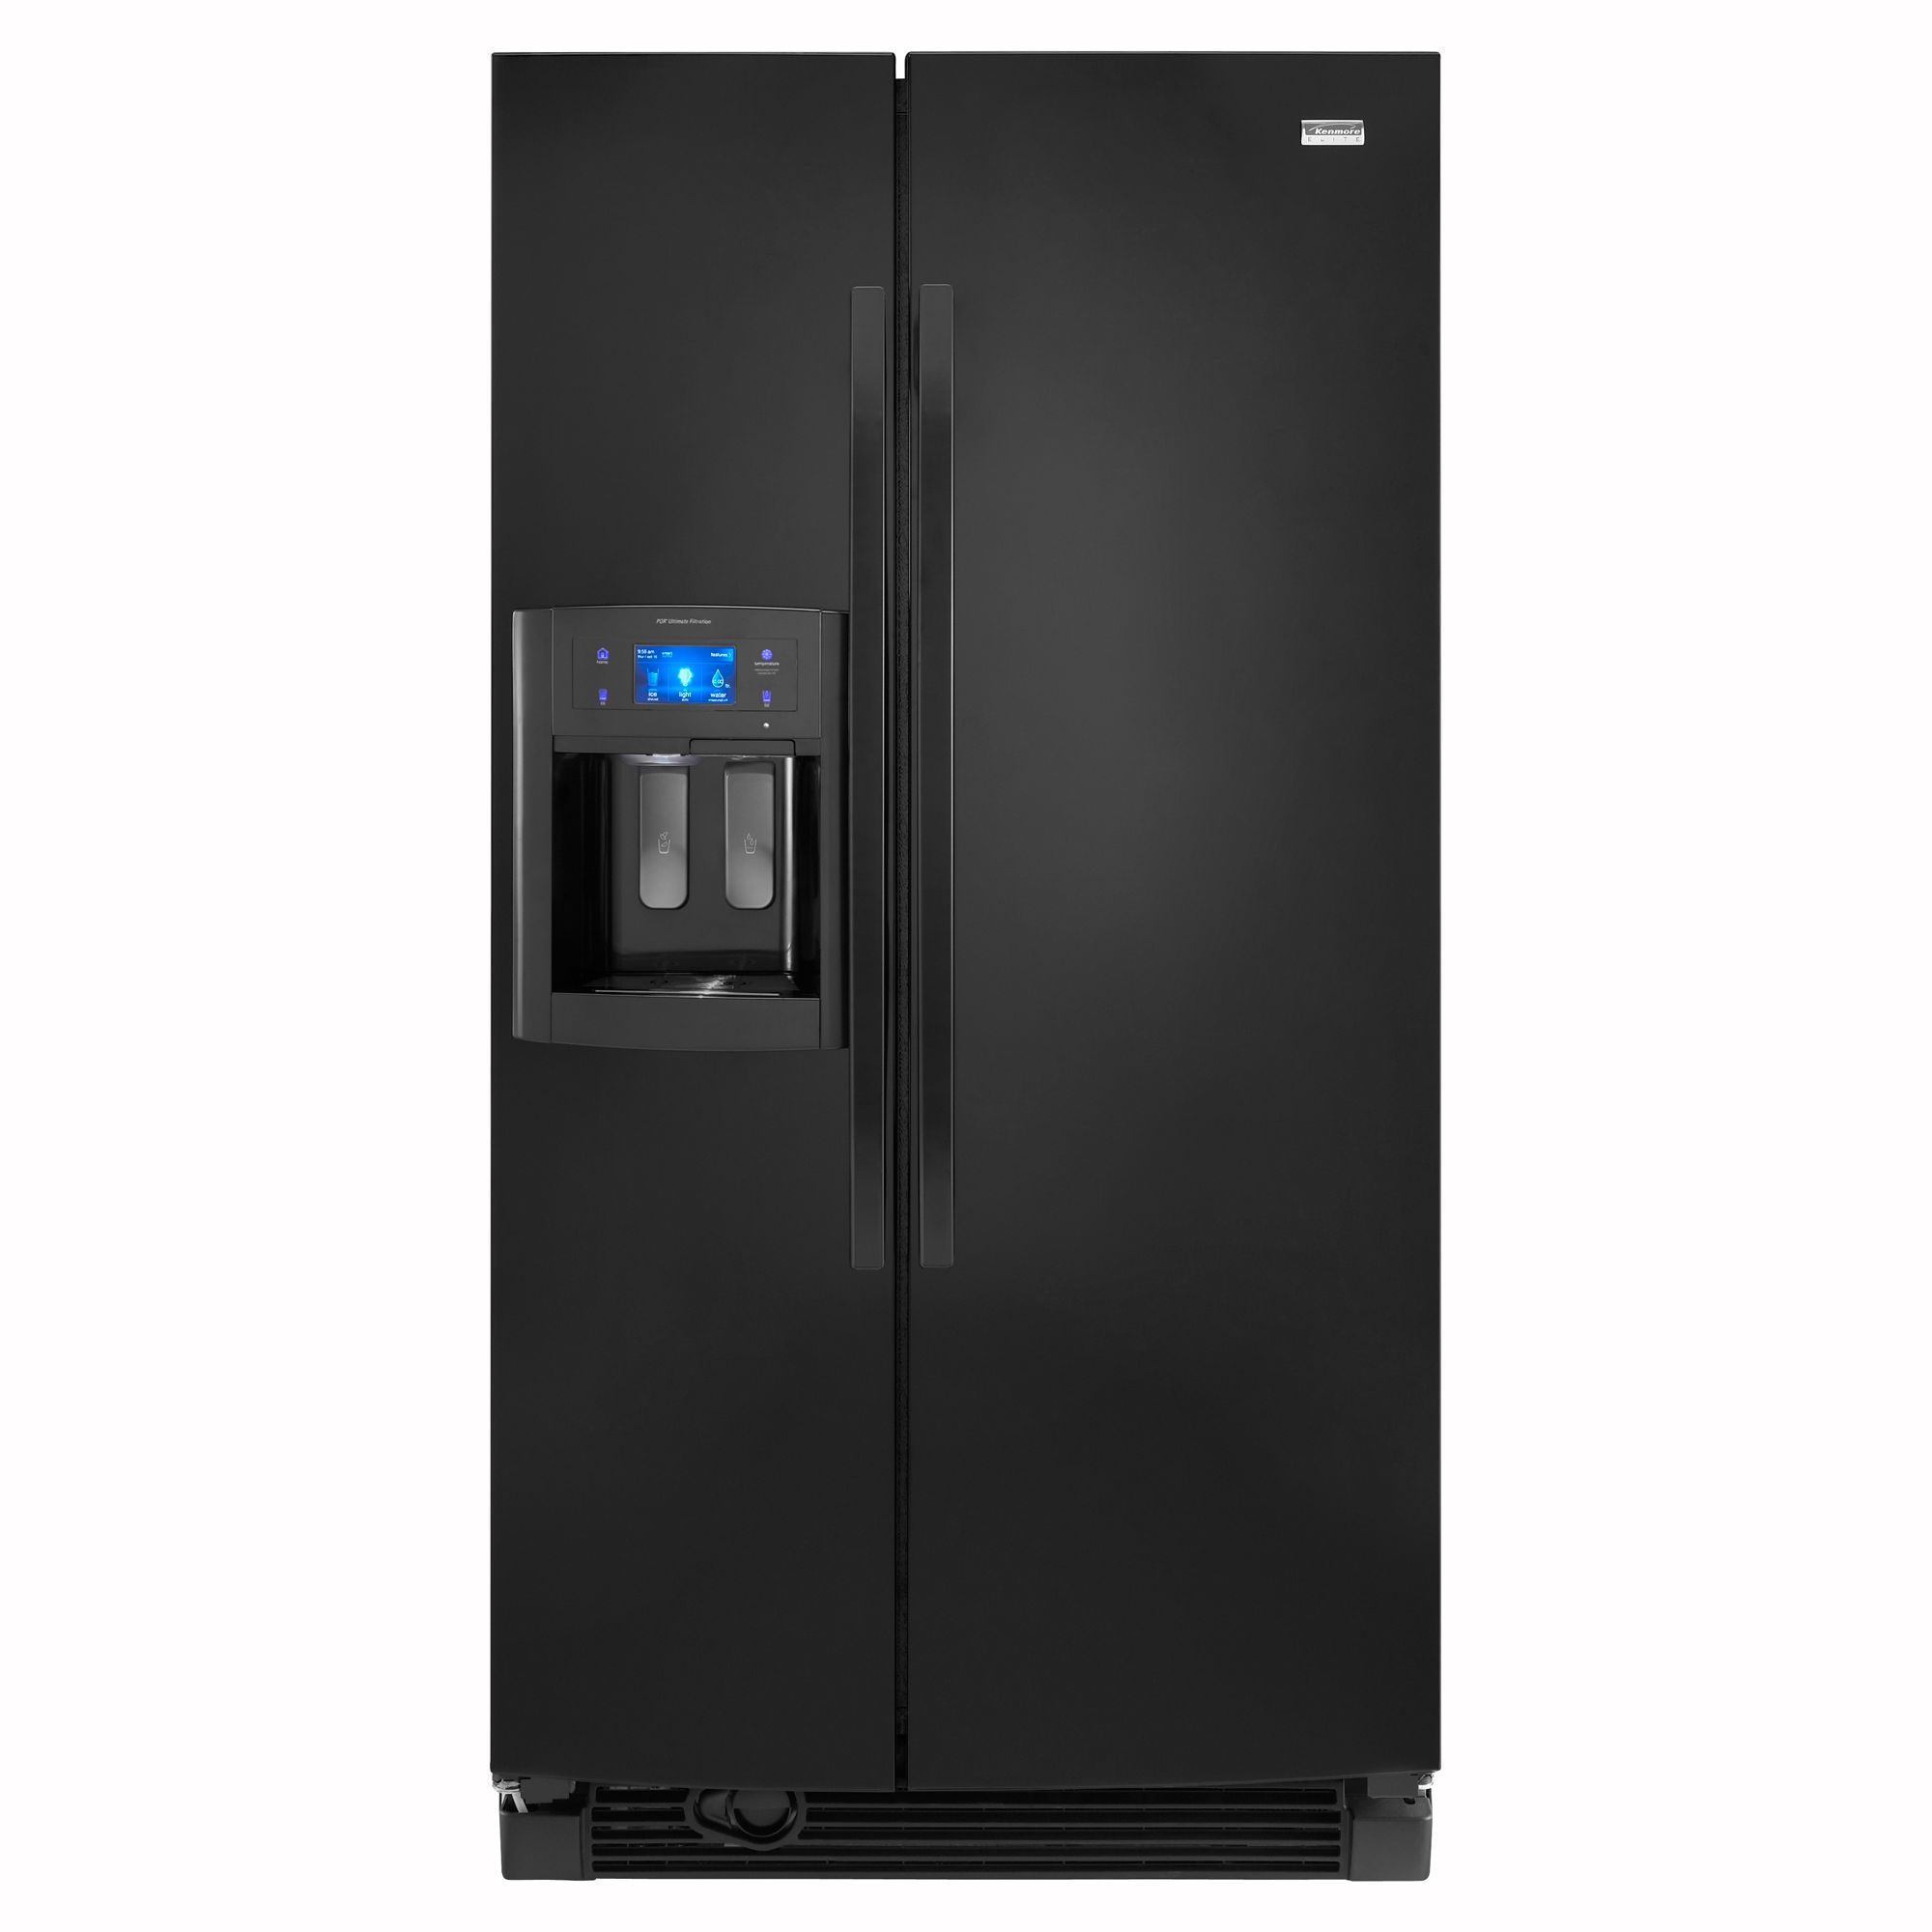 Kenmore Elite 25.1 Cu. Ft. Side-side Refrigerator With Shaved Ice 5044 Energy Star